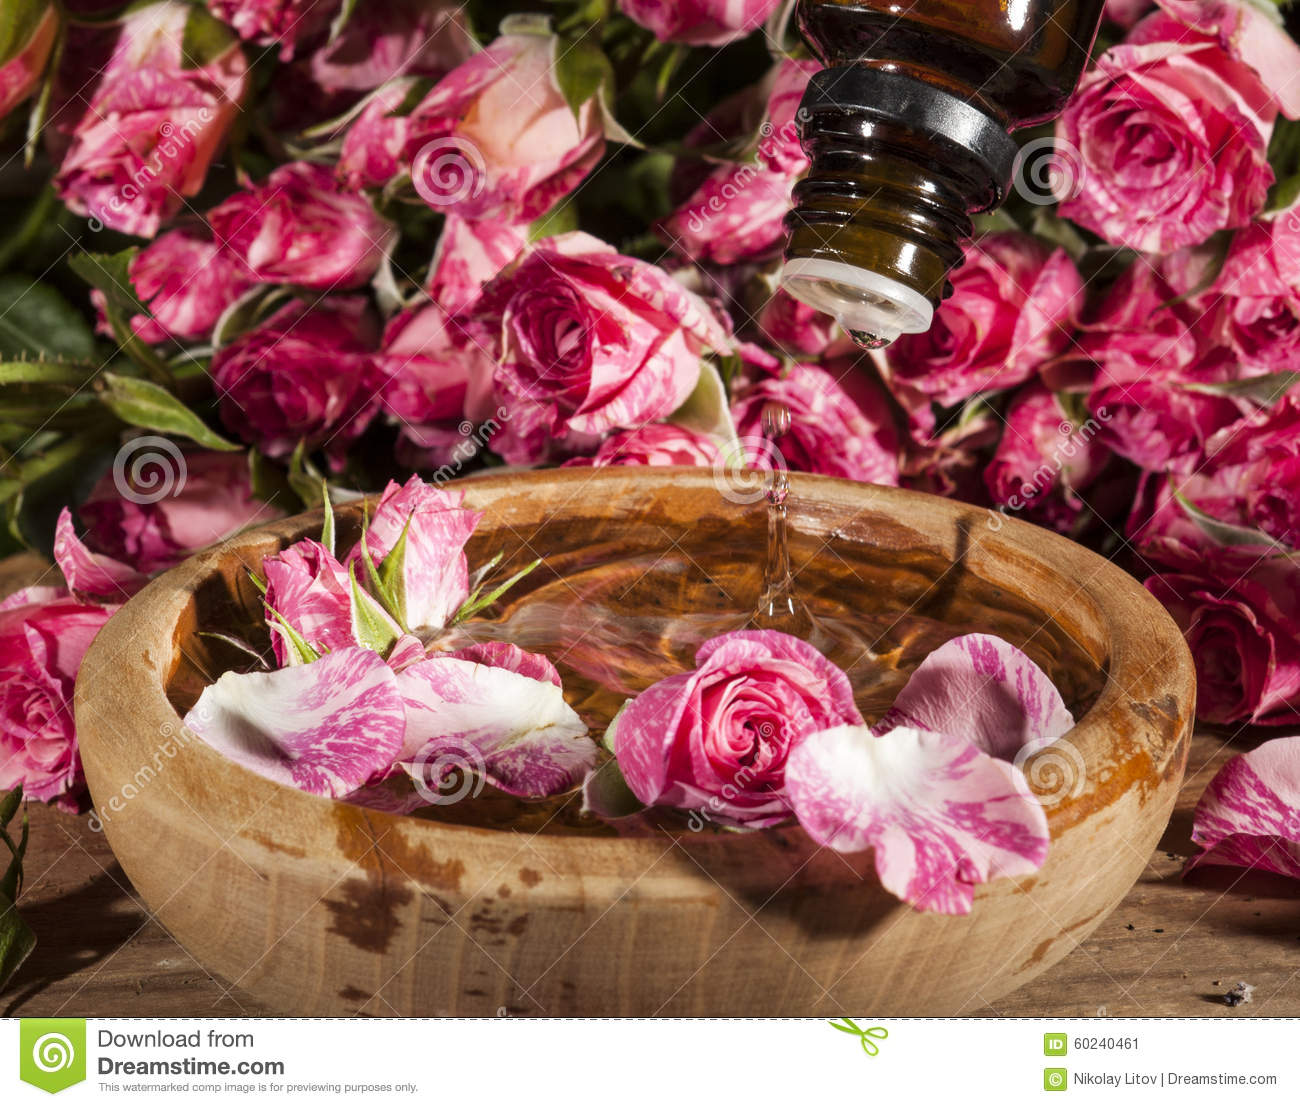 Rose essential oil stock photo image 60240461 - Rose essential oil business ...